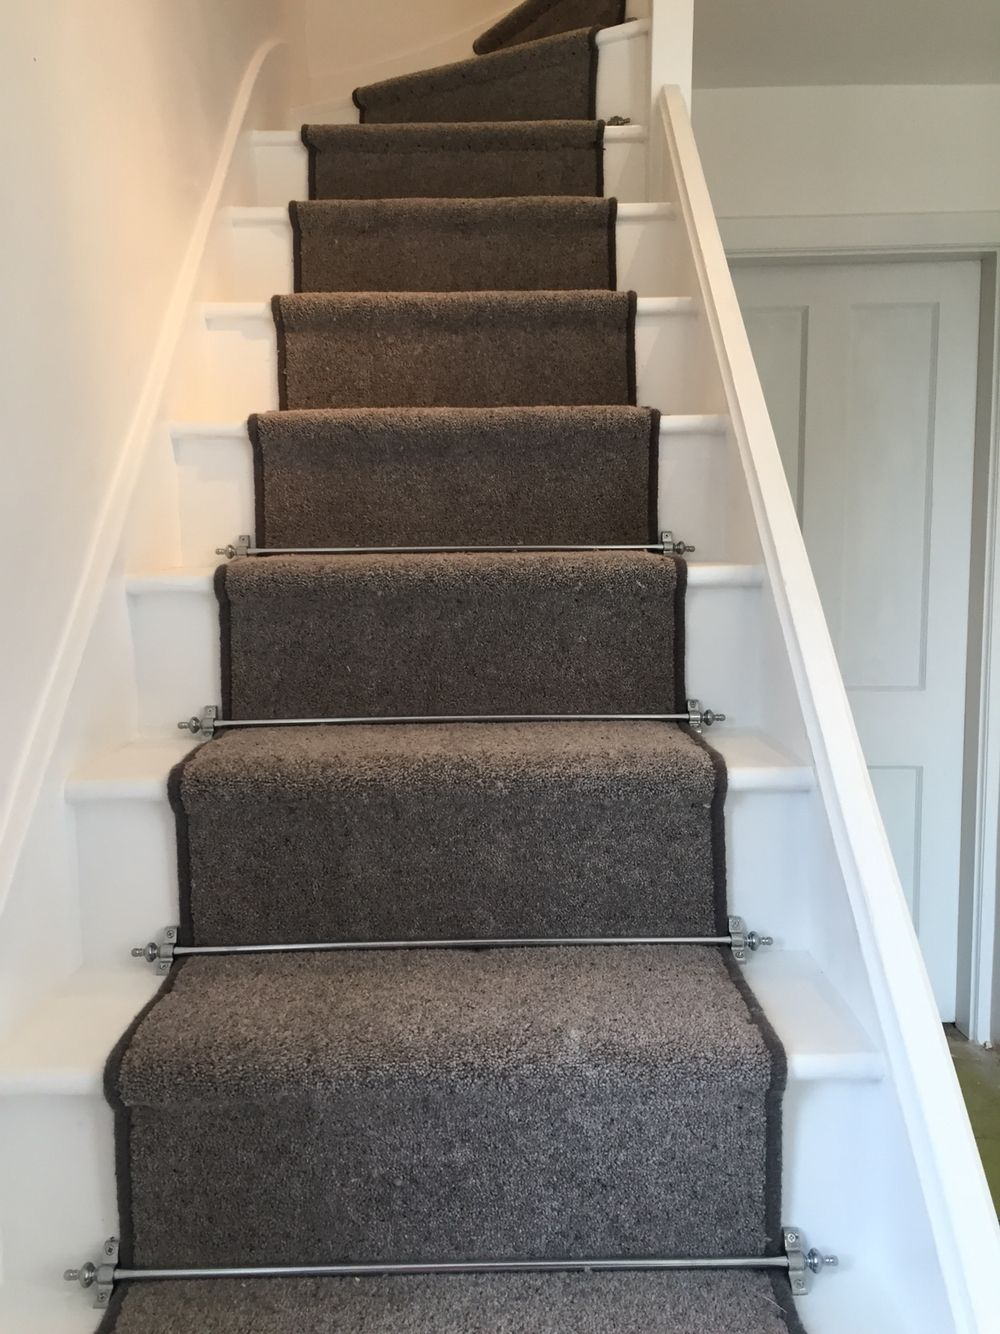 Grey Carpet Runner And Chrome Carpet Rods On White Painted Stairs | Painted Stairs With Carpet | Middle | Design | Diamond Pattern | Victorian | Laminate